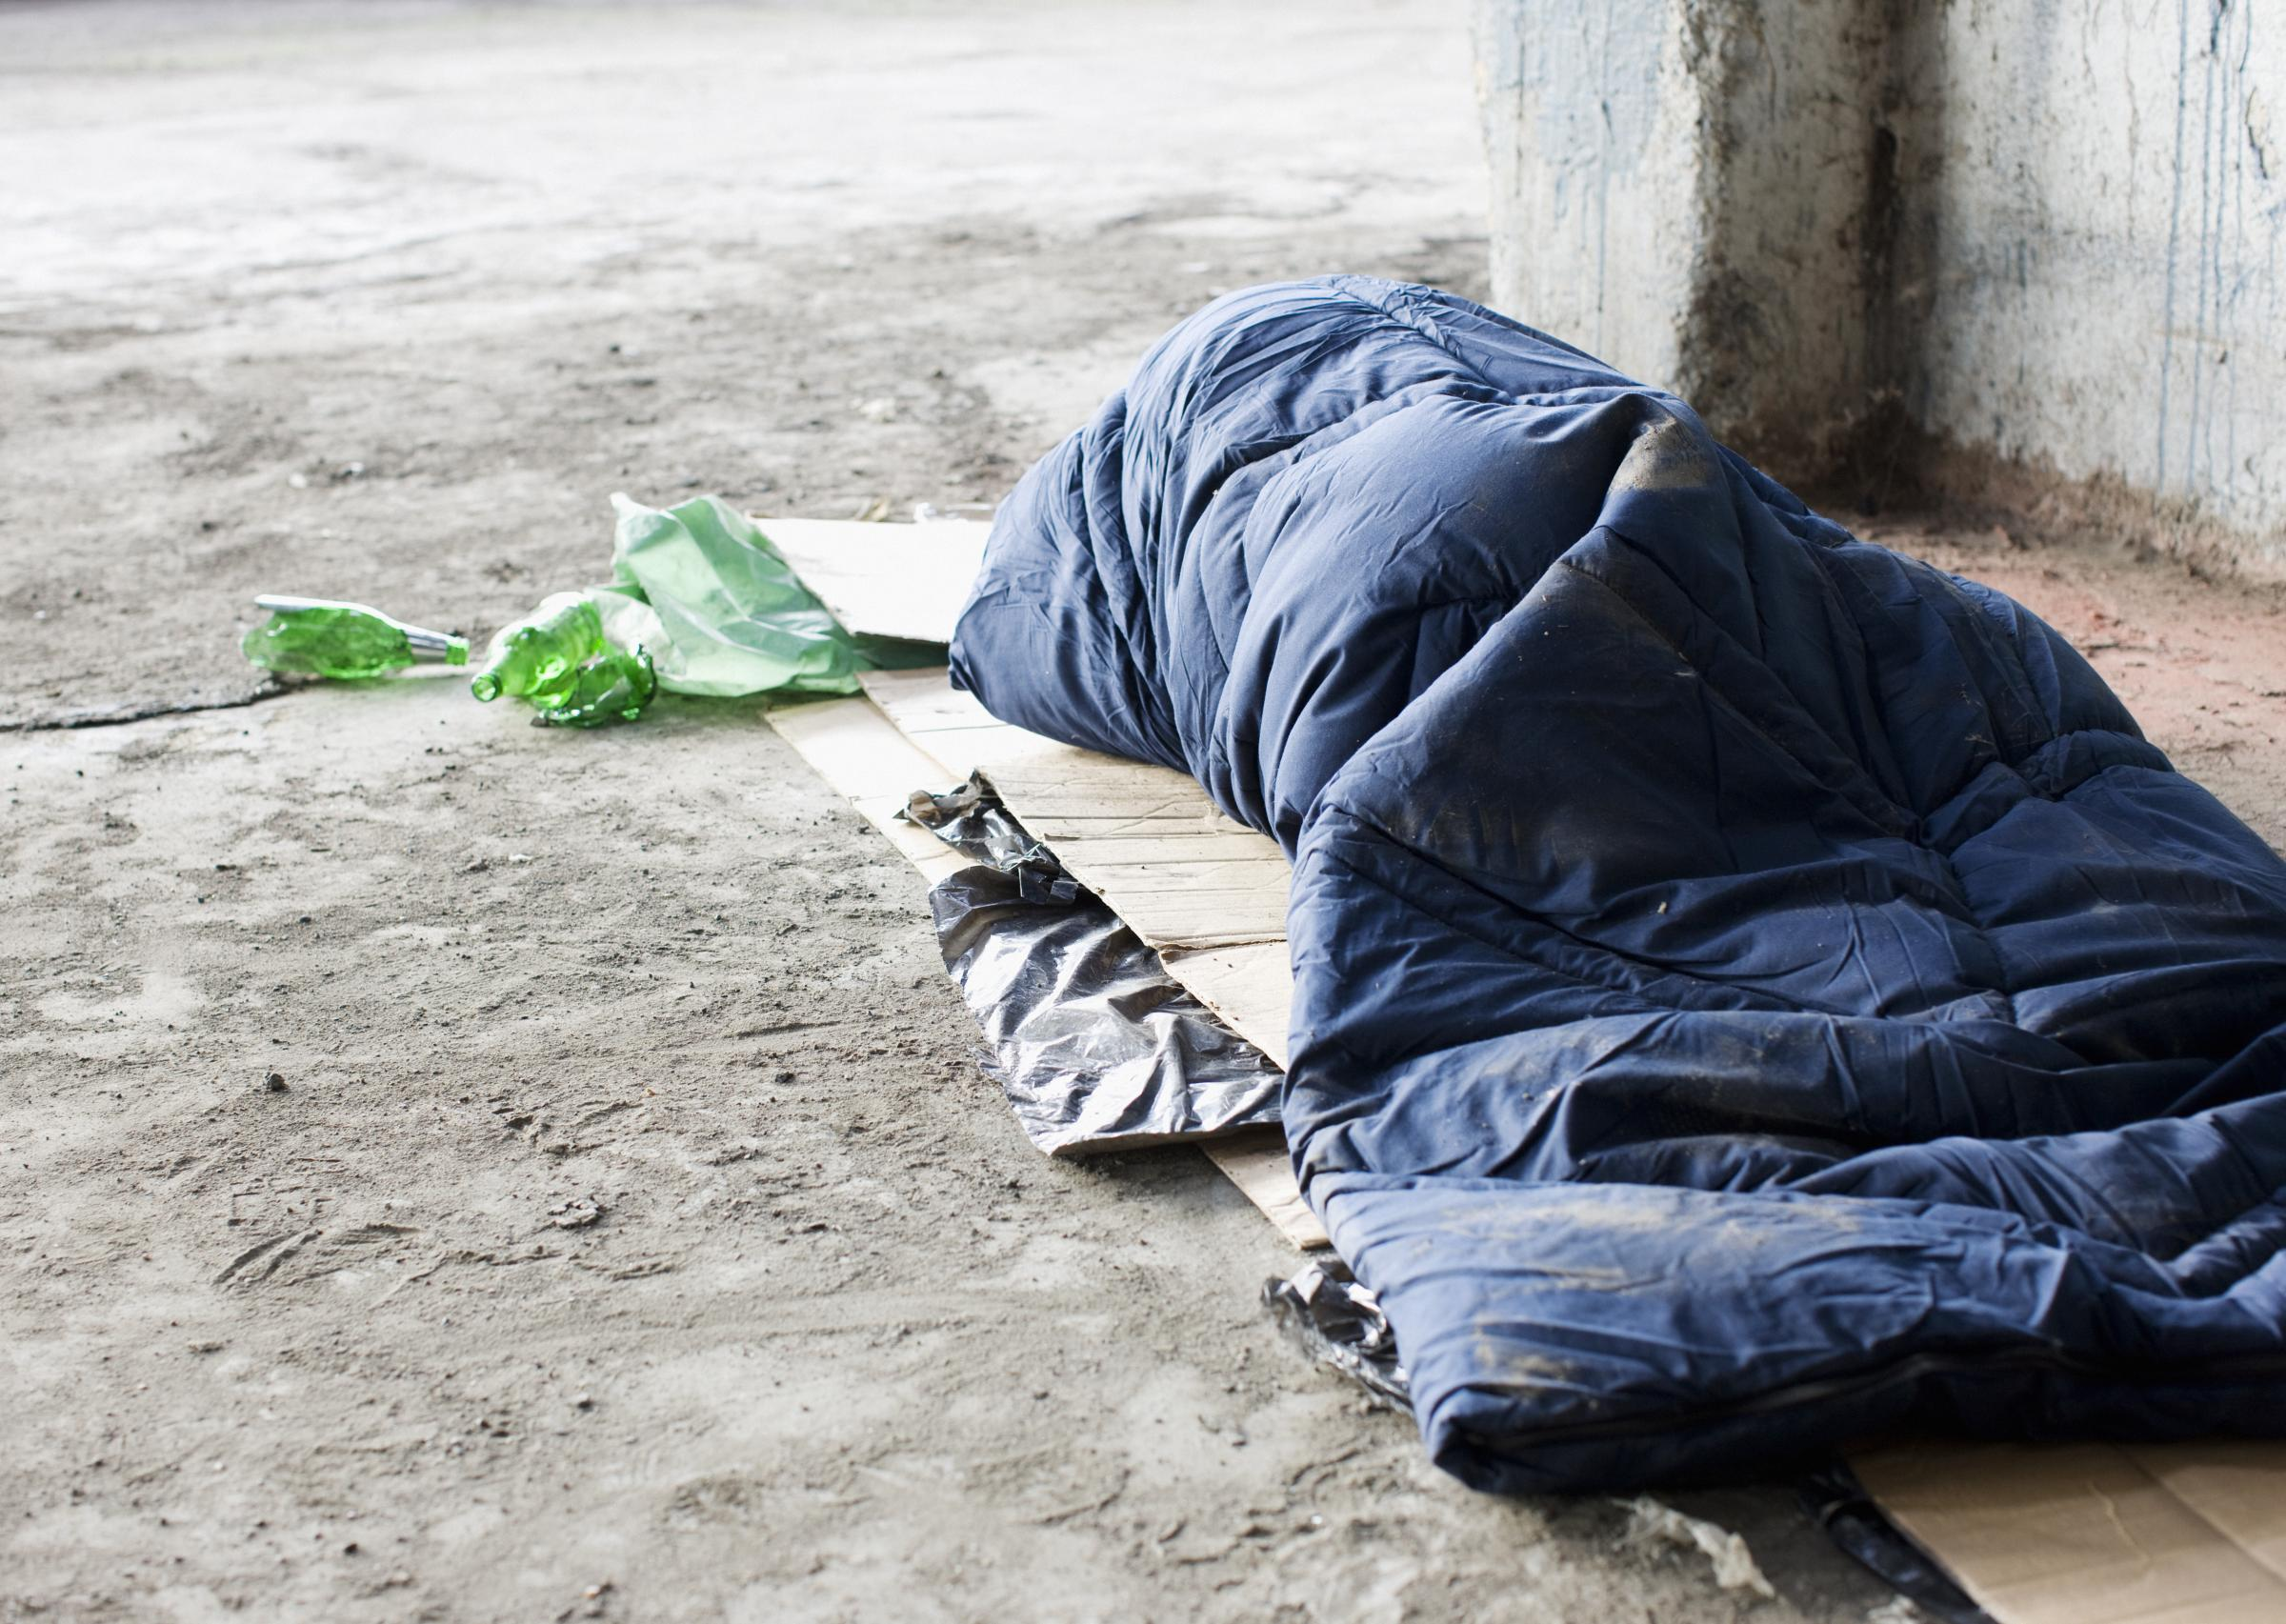 Homeless people in Newport share their stories at the Olive Branch